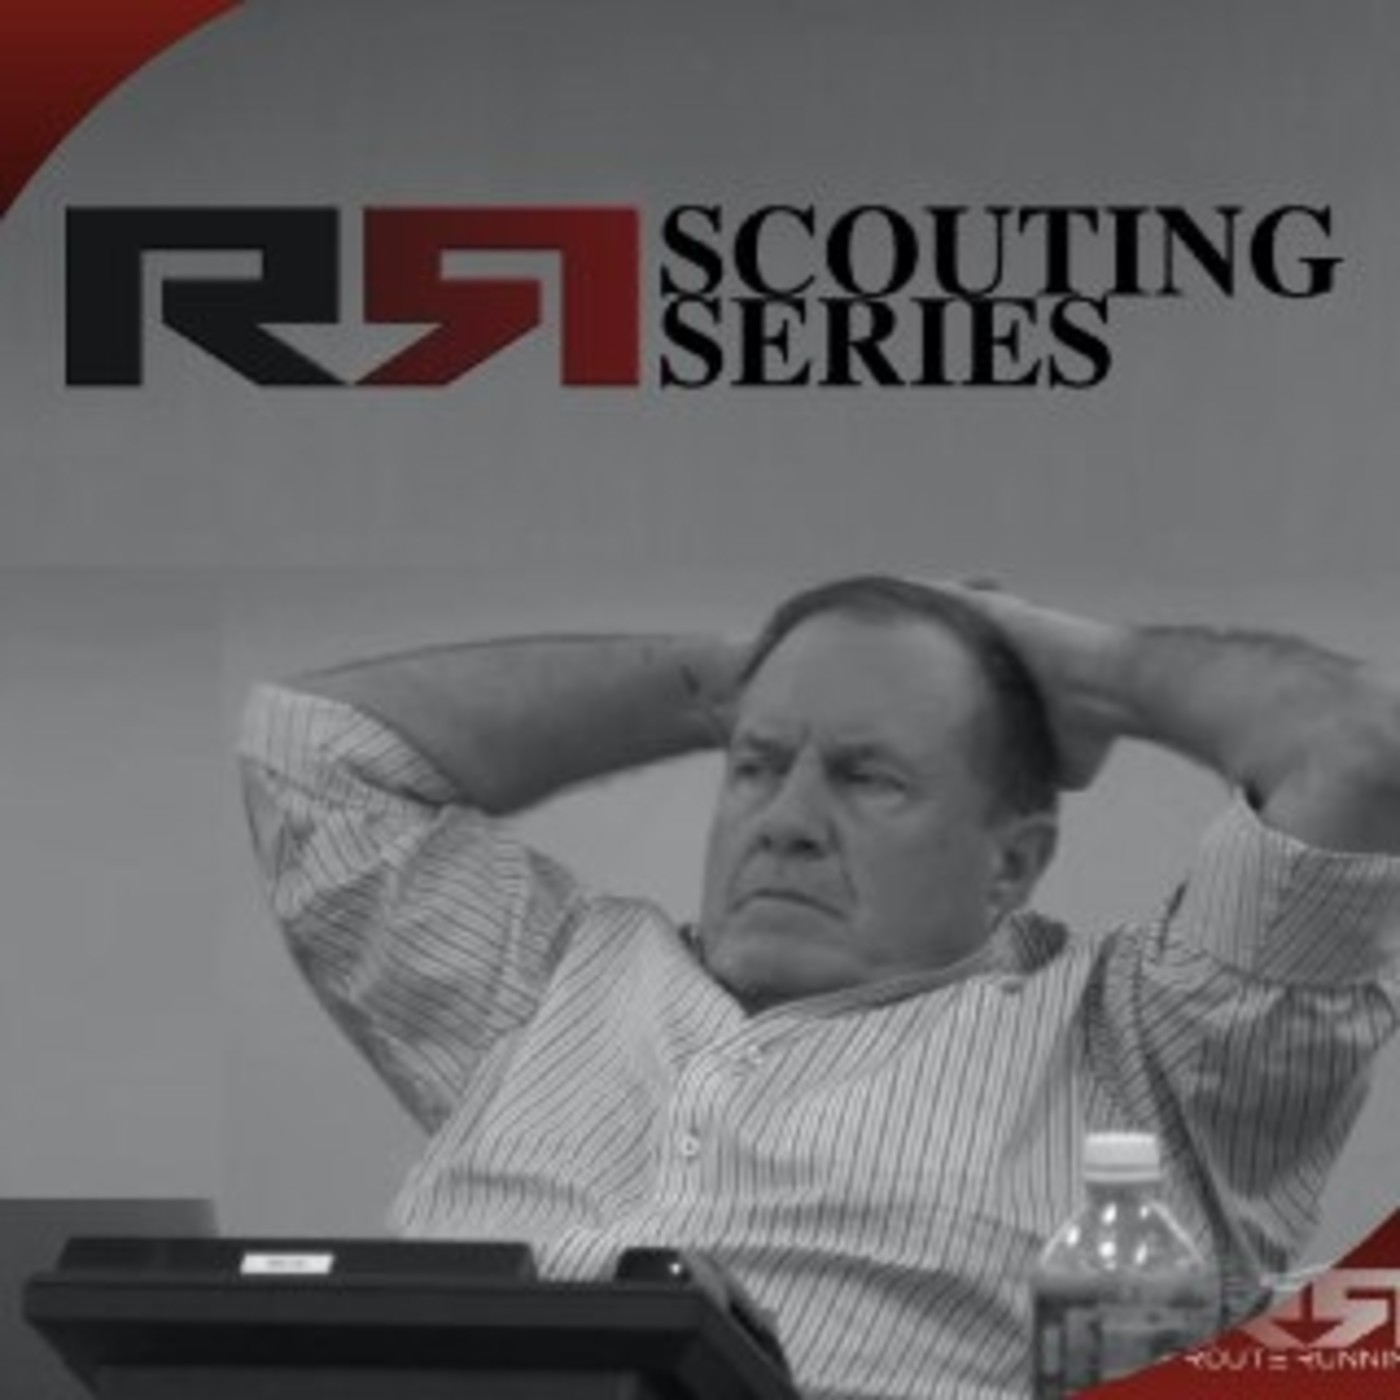 RR Scouting Series TEs: Kyle Pitts, Charlie Kolar, Noah Gray & Brant Kuithe